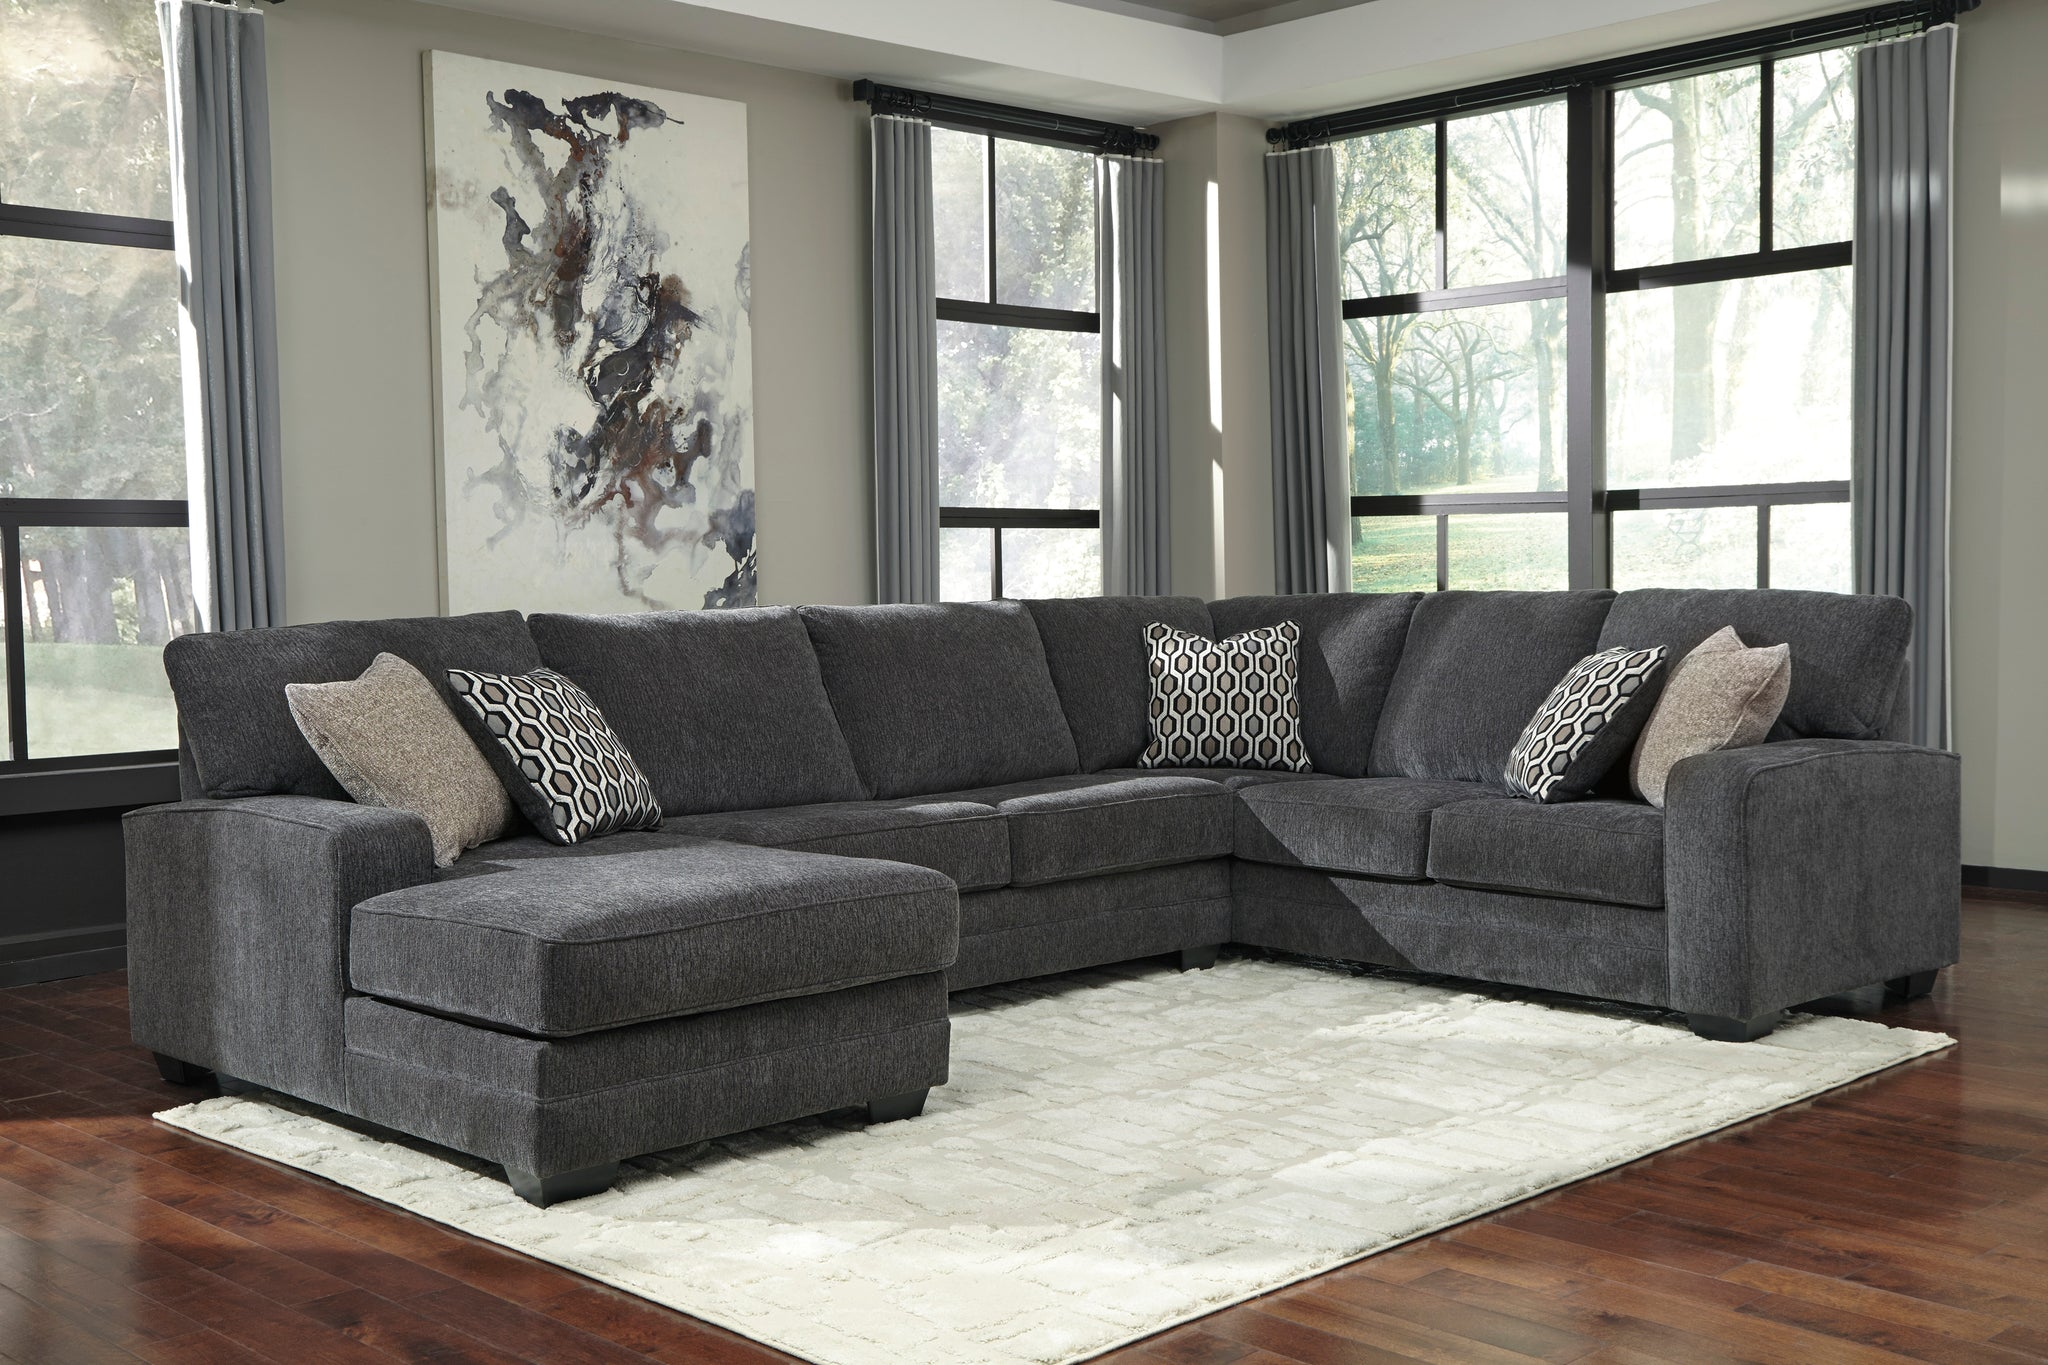 Tremendous Tracling Slate Laf Sectional Pdpeps Interior Chair Design Pdpepsorg